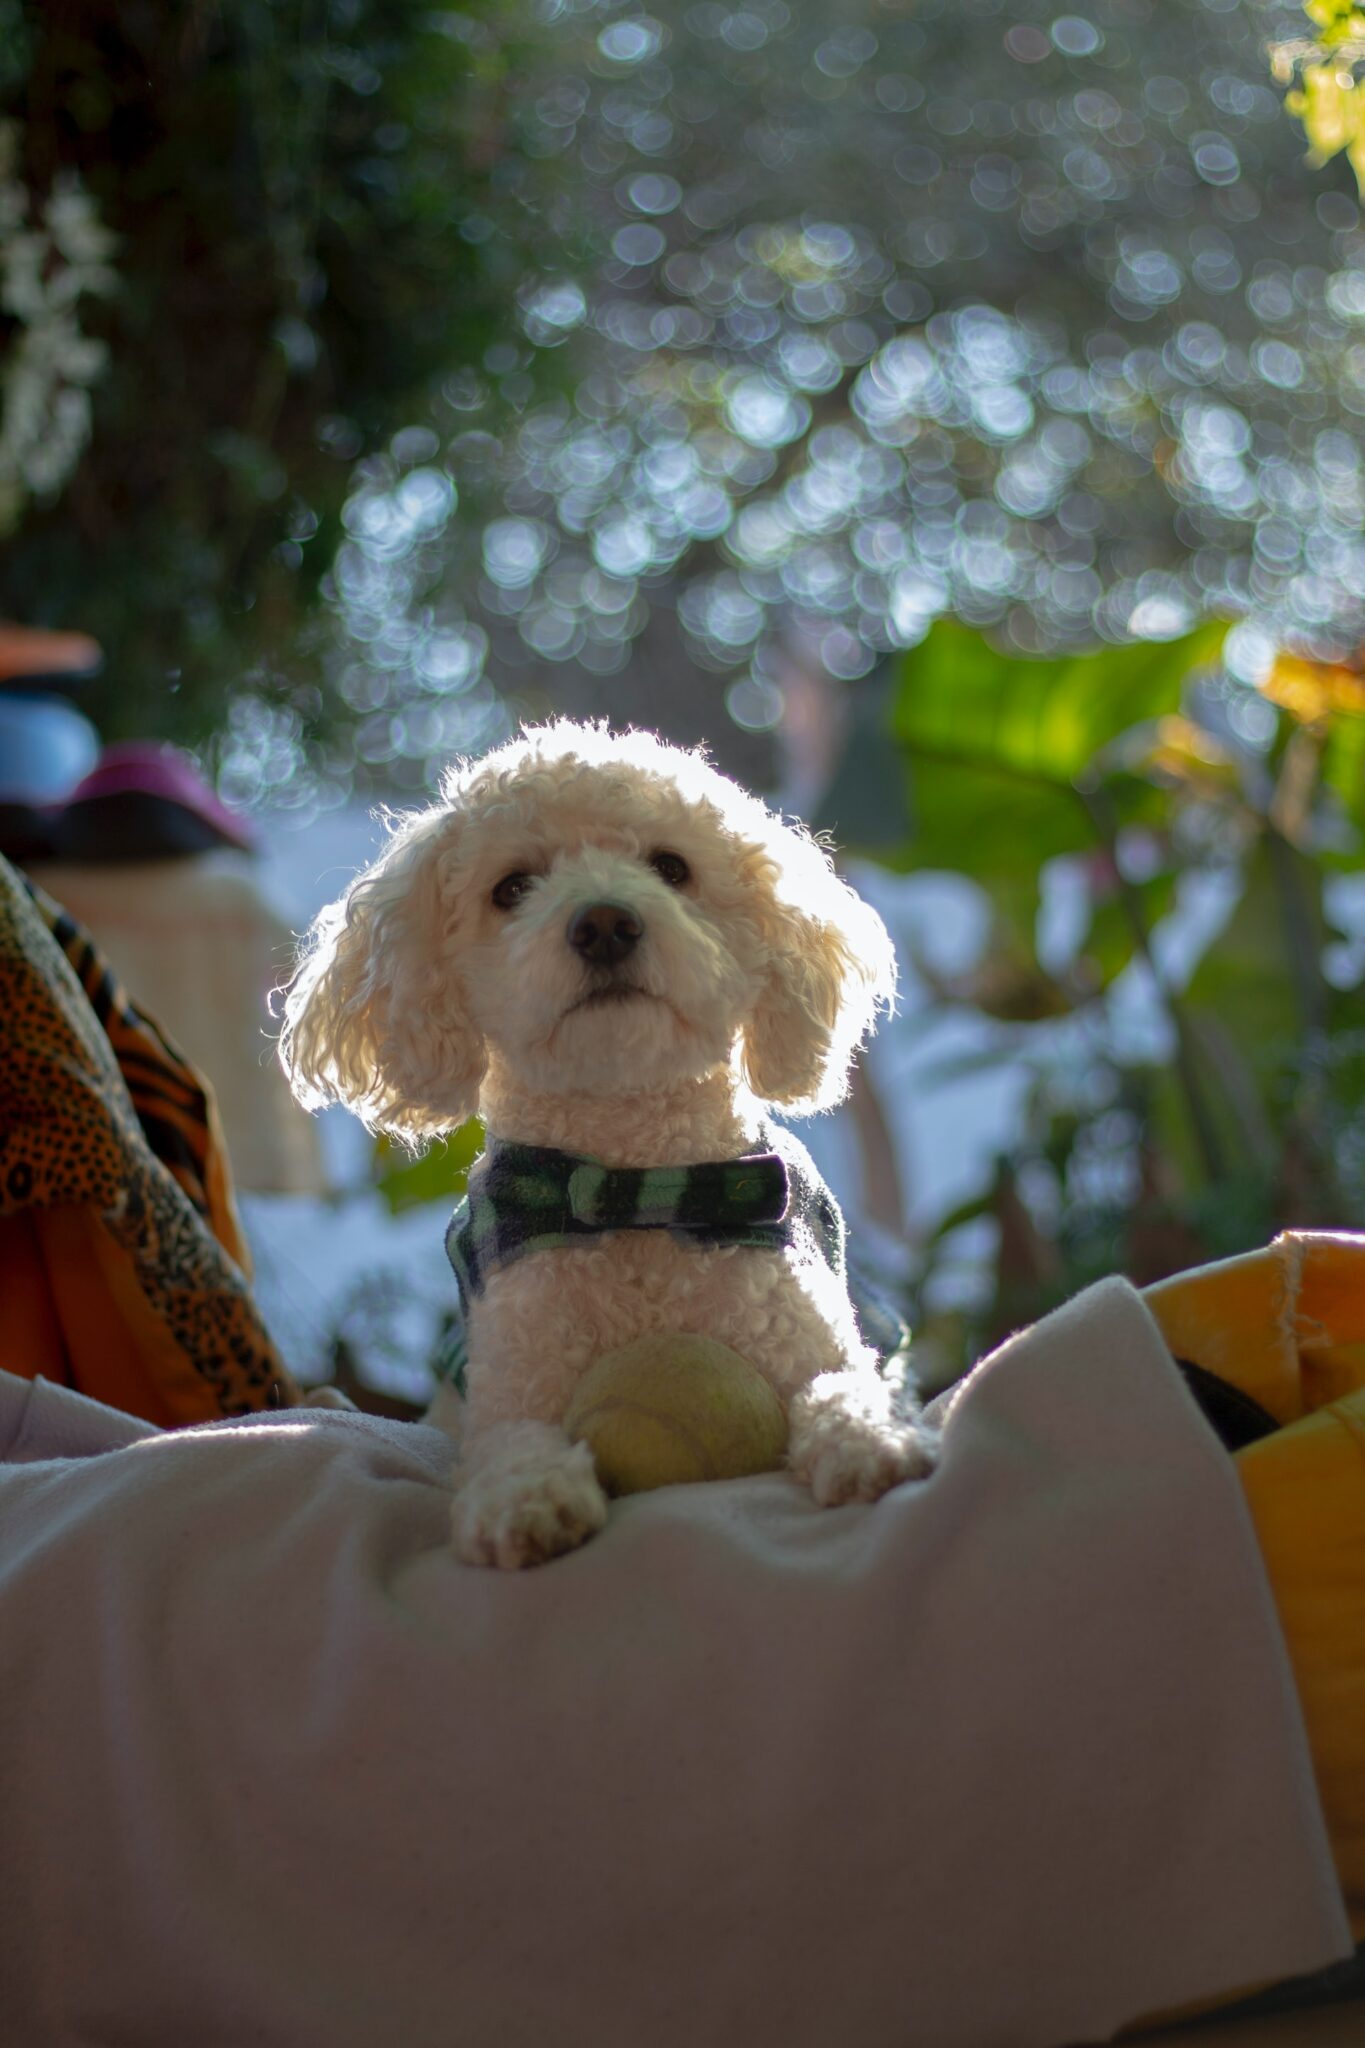 White cockapoo puppy standing and looking